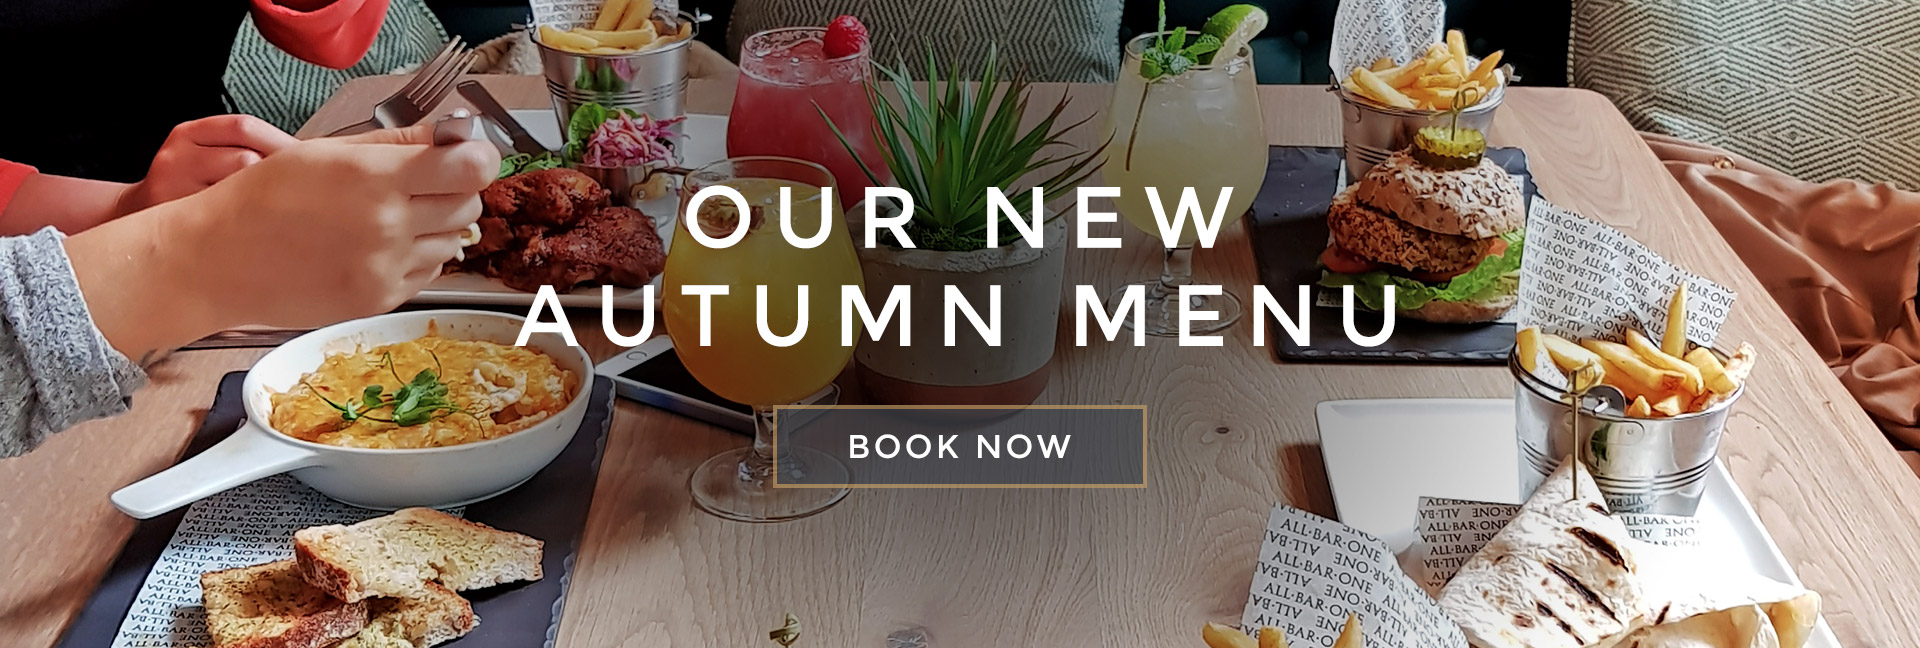 Our new Autumn menu at All Bar One Appold Street - Book now